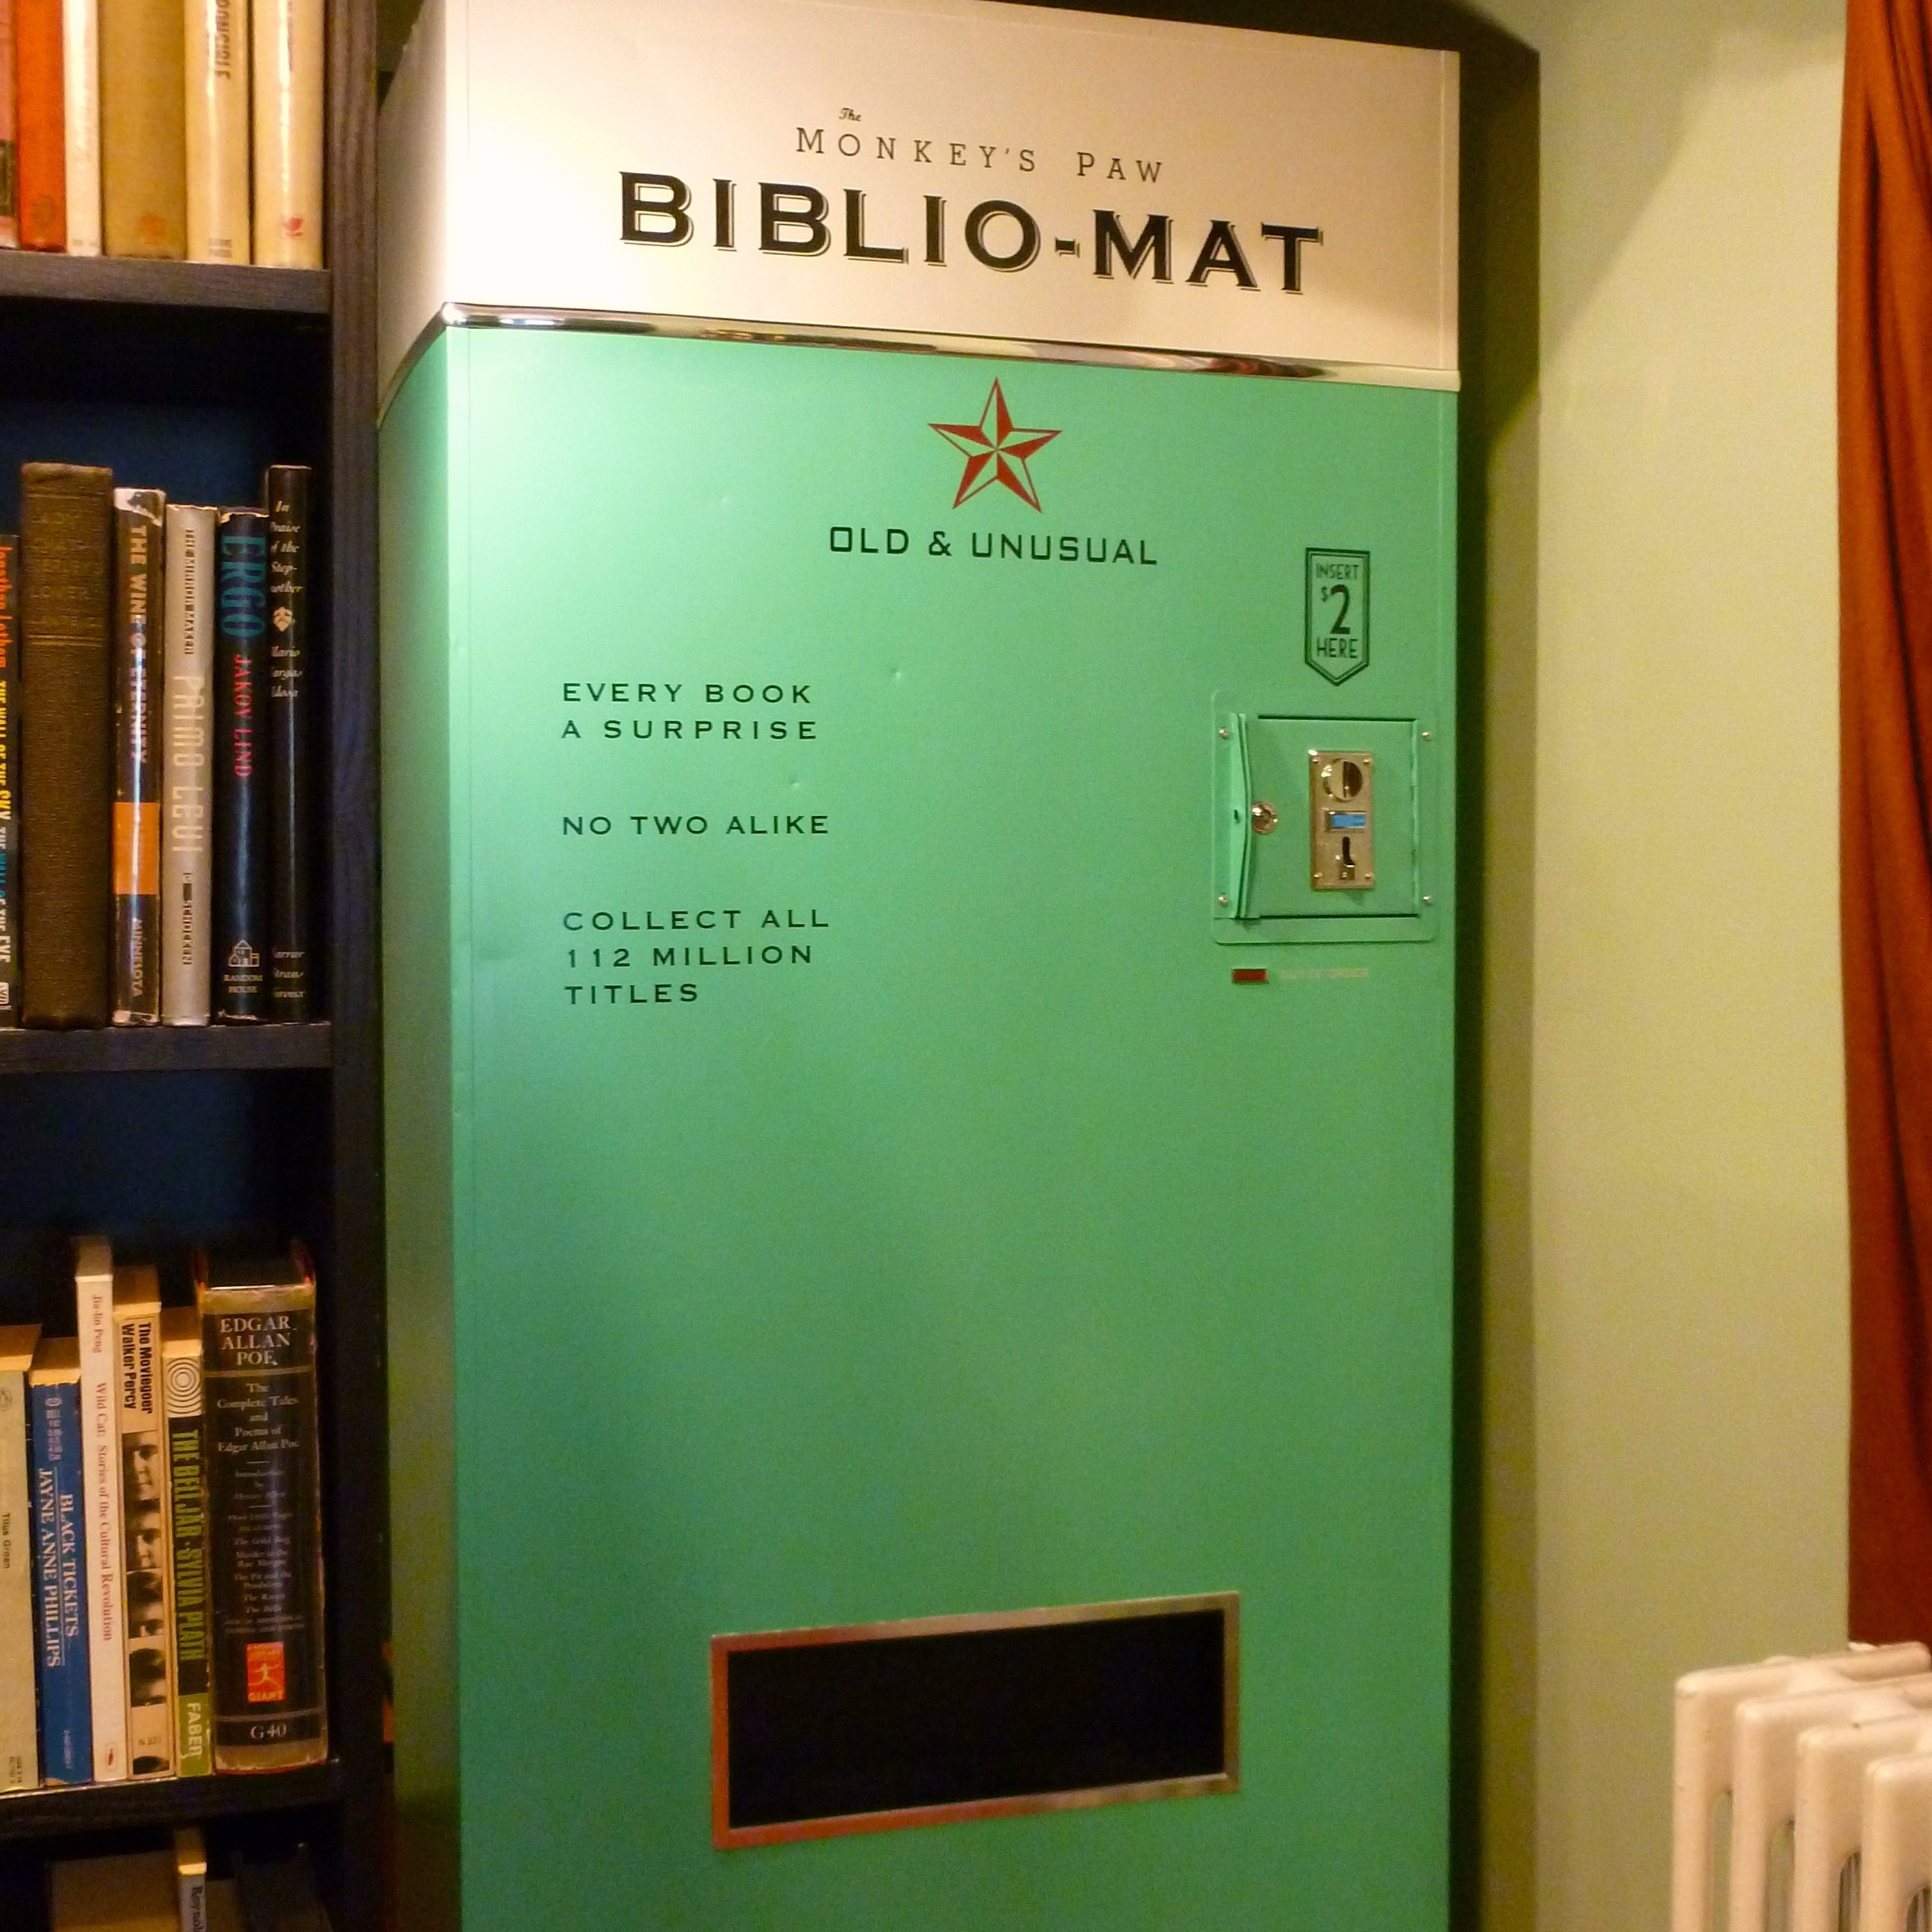 The Biblio-Mat in Stephen Fowler's Monkey's Paw bookstore dispenses random used books for $2 each.